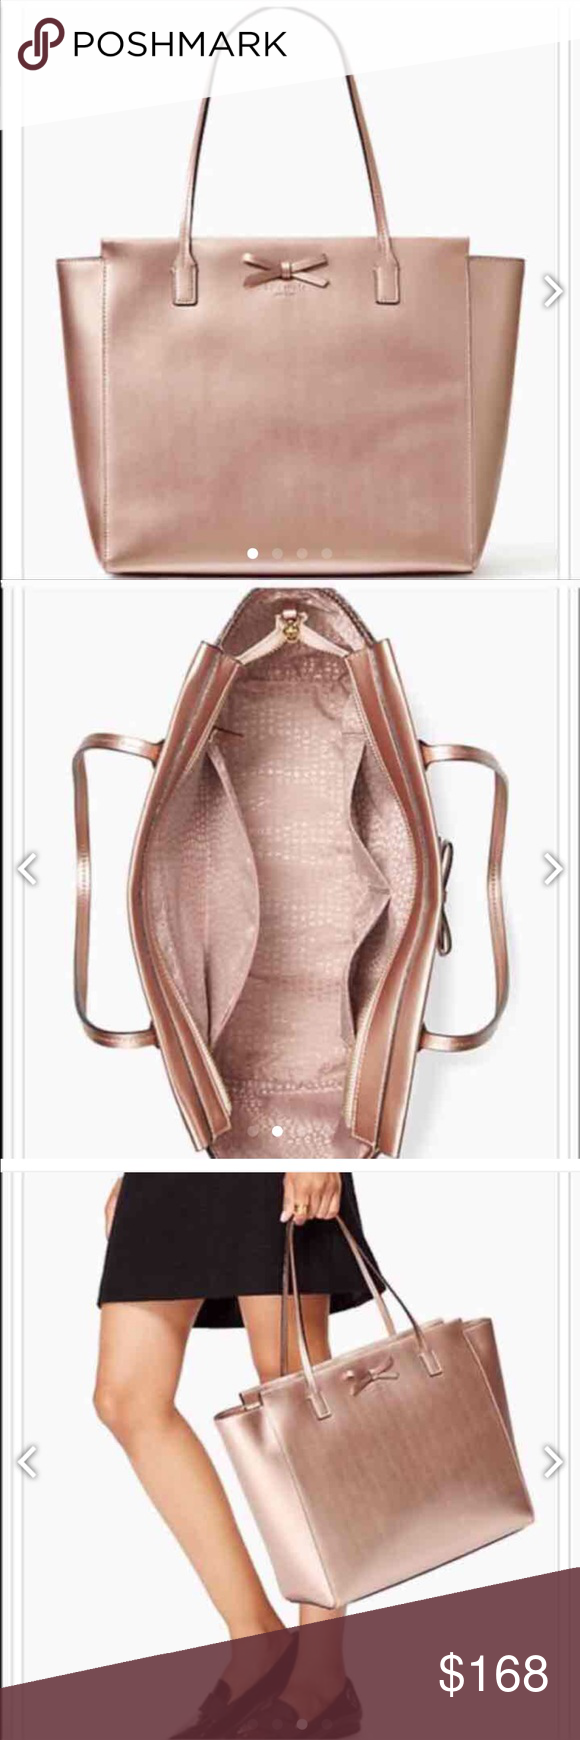 """NWT Kate Spade Rose Gold Tote BLACK FRIDAY SALE! New with Tags Kate Spade Sawyer Street Taden Metallic Leather Tote in Rose Gold  100% Authentic - still in Shipping Plastic  Regular Price: $298 Sale price: $195  Great Gift for you or a great Deal for a Christmas Gift!     Style: #WKRU3494  Look is simple, yet elegant for everyday use!  Size: Large to XL  Measurement: 13.3"""" (l) bottom 17 1/2"""" top widest x 12.1"""" (h) x 4.3"""" (w) Drop length 8.15"""" 14-karat light gold hardware Exterior: Tote with…"""